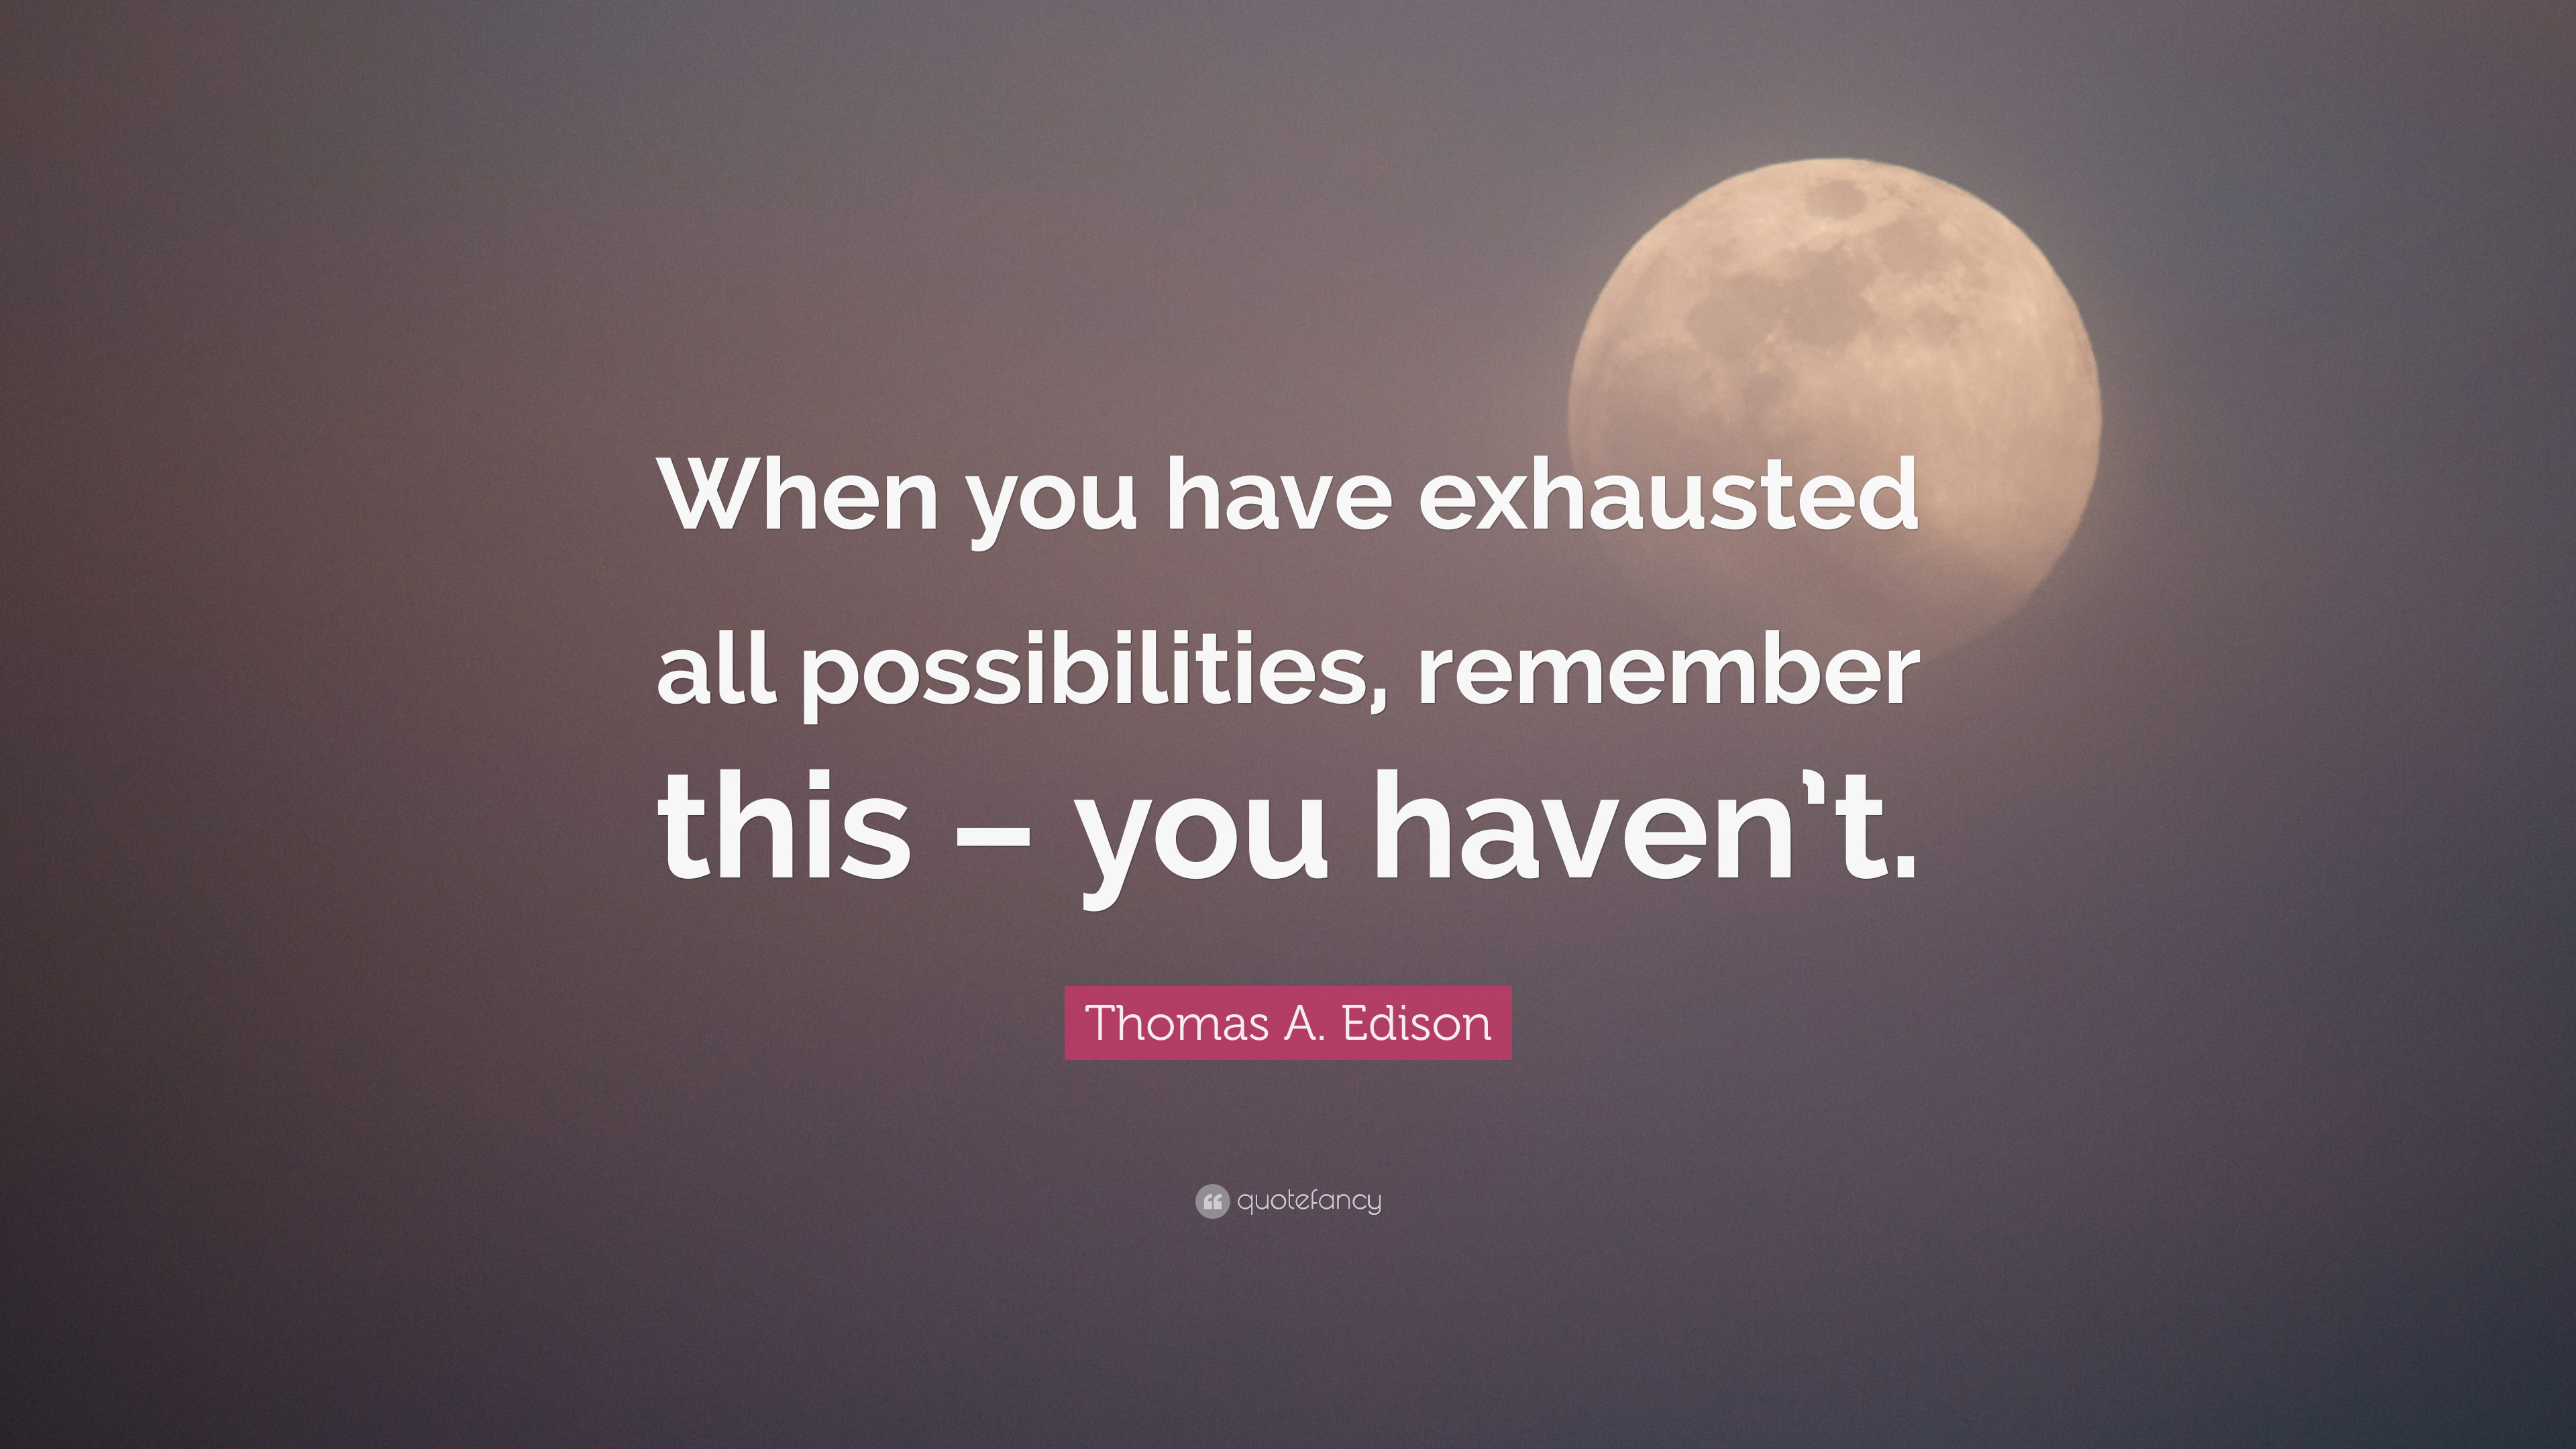 """Elon Musk Quotes >> Thomas A. Edison Quote: """"When you have exhausted all ..."""